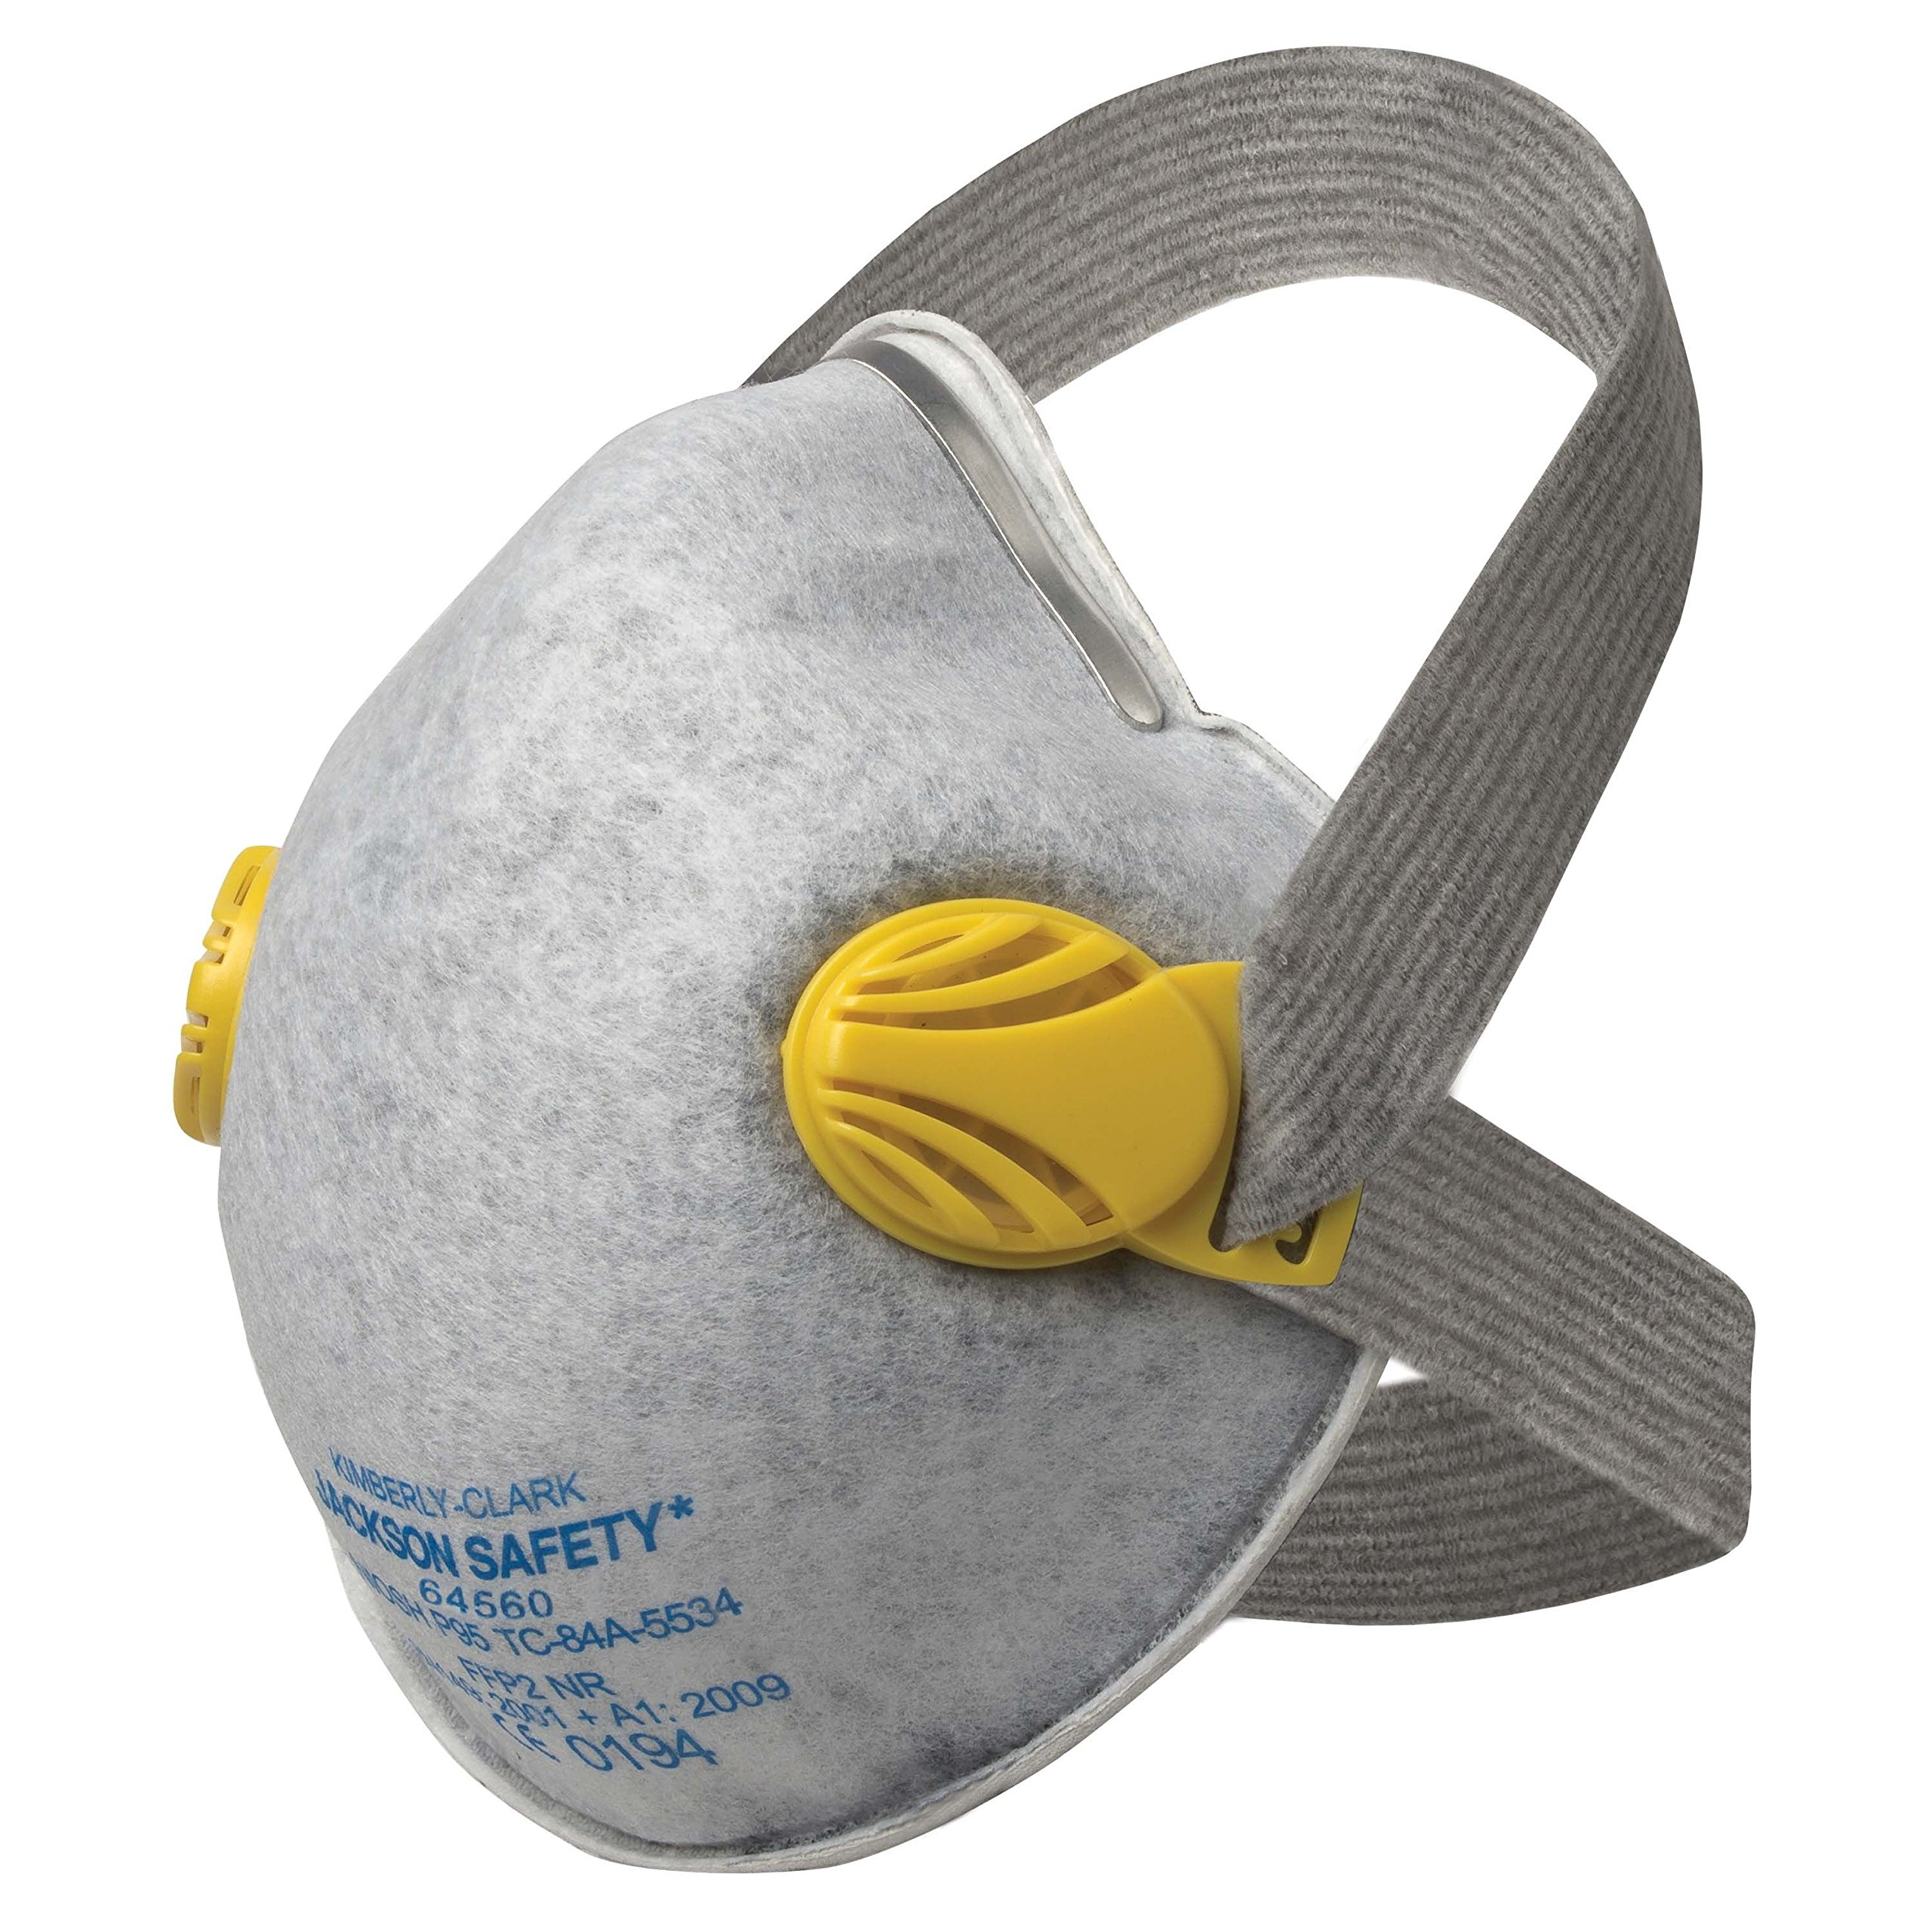 JACKSON SAFETY 64560 R20 Respirator with Nuisance Level Organic Vapor Relief, Comfort Straps and Dual Valves, 7'' Height, 10.25'' Length, 5.3'' Width, P95 Particulate, Adjustable (Pack of 80)